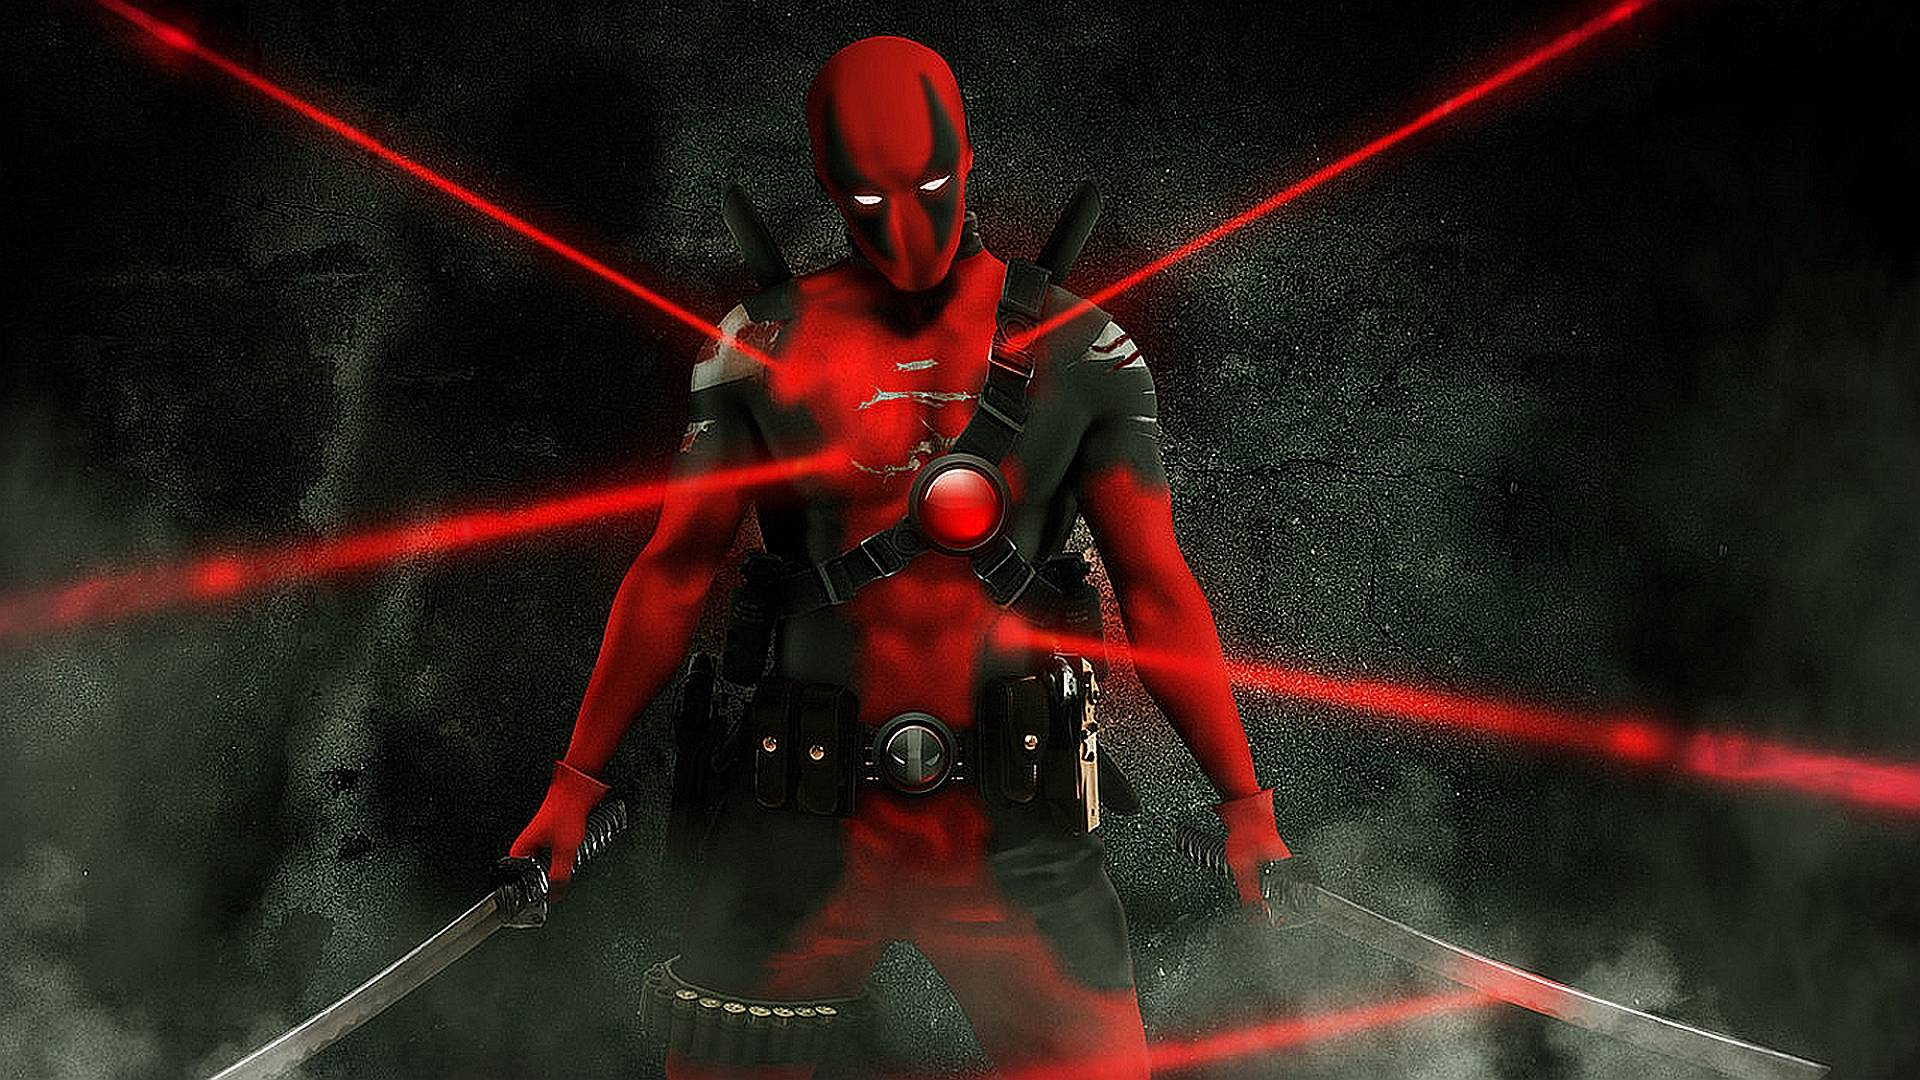 Deadpool movie wallpapers wallpaper cave for D wall wallpaper